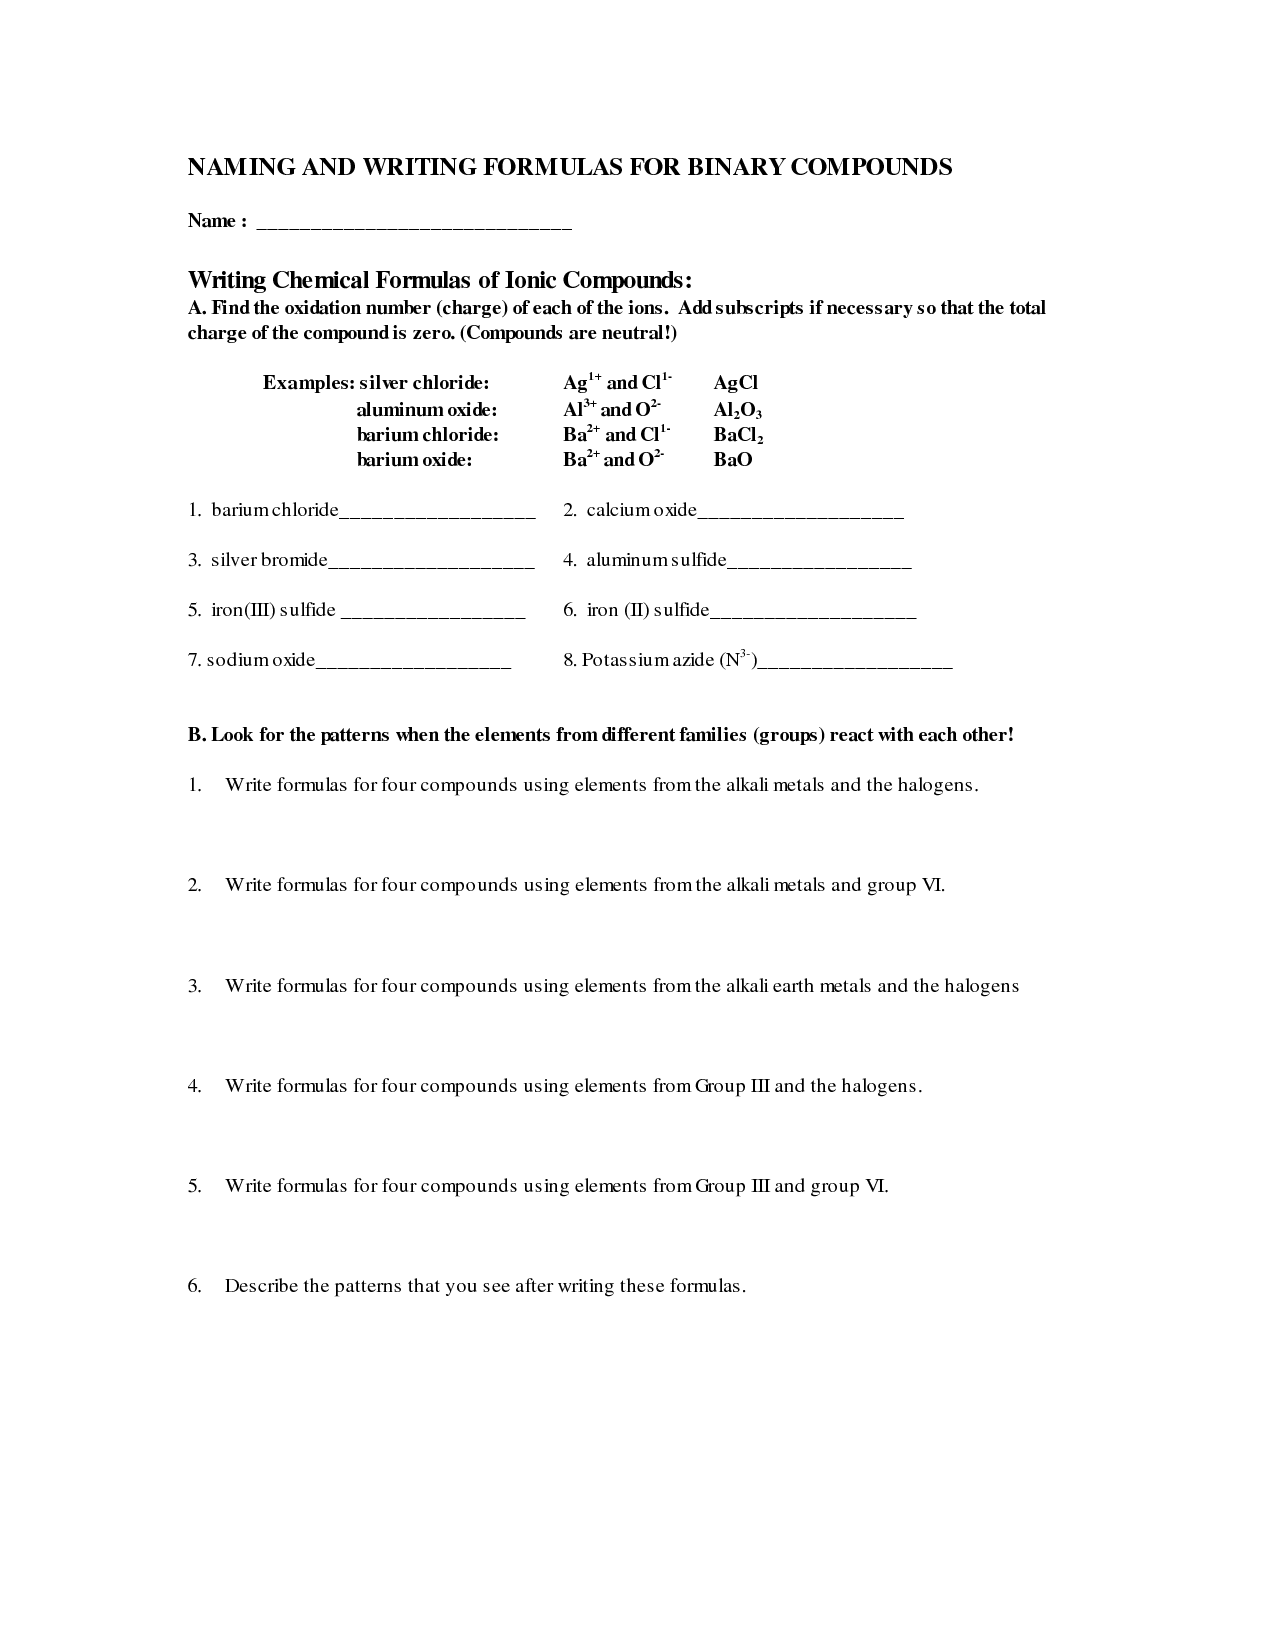 14 Best Images Of Naming Compounds Worksheet With Answers